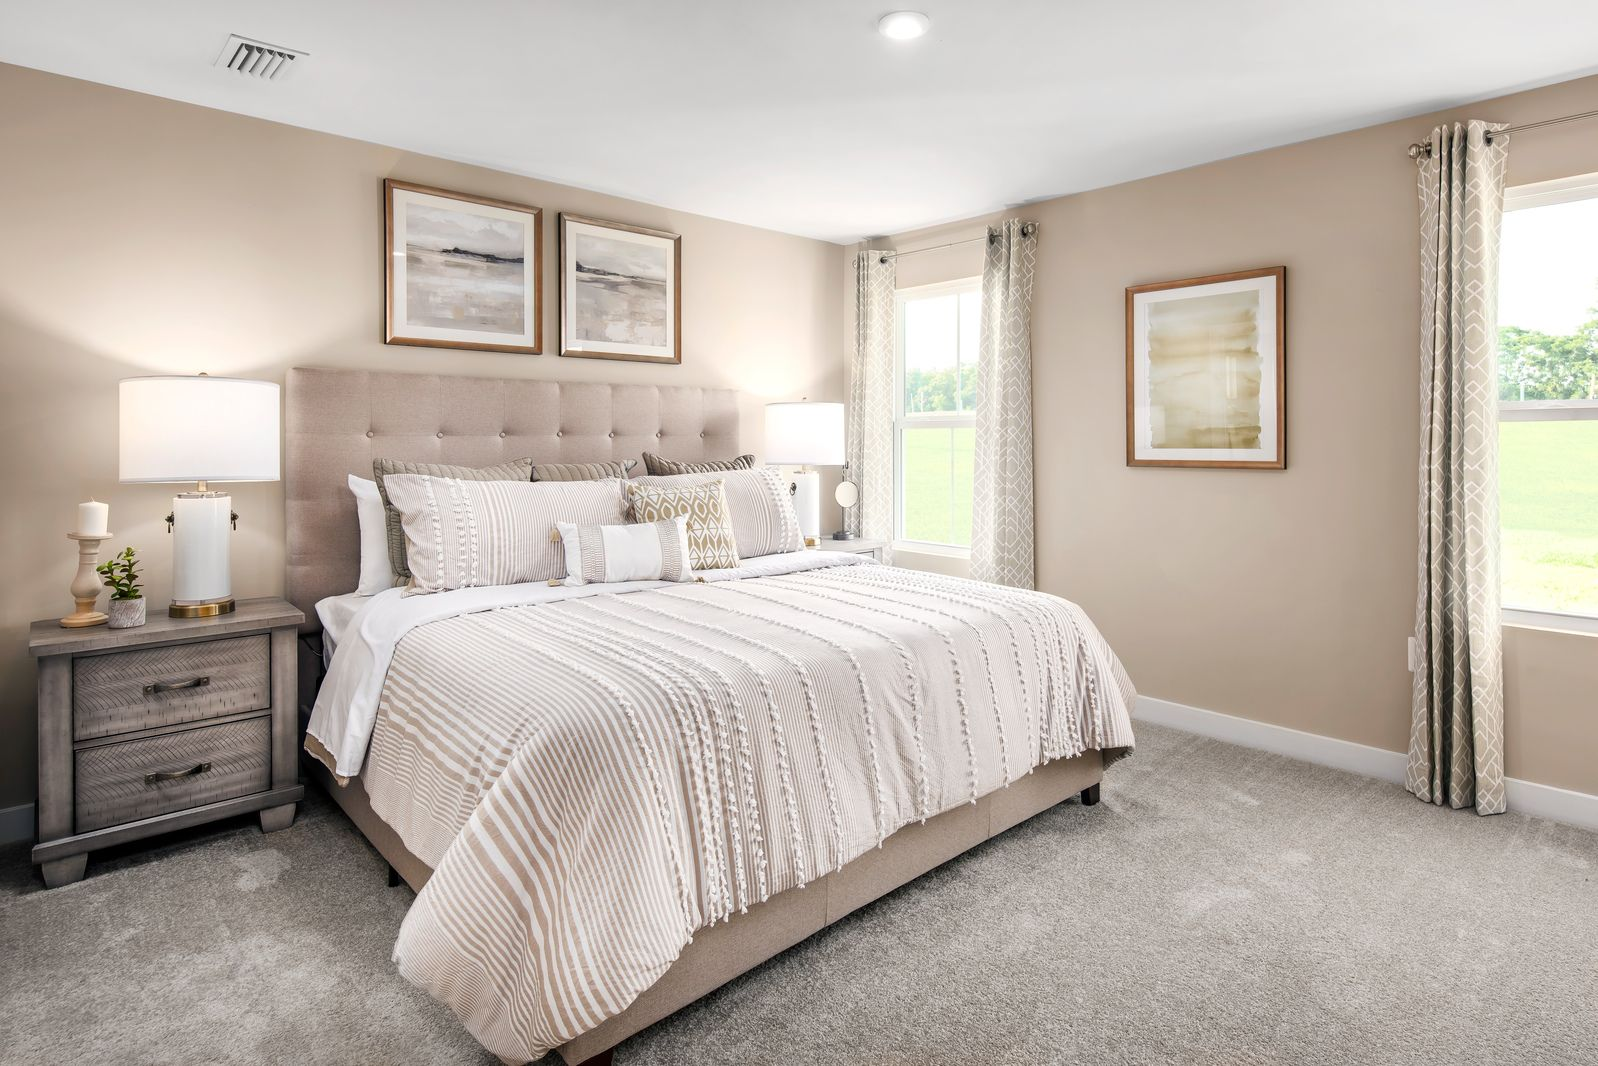 Bedroom featured in the Grand Cayman By Ryan Homes in Sussex County, NJ